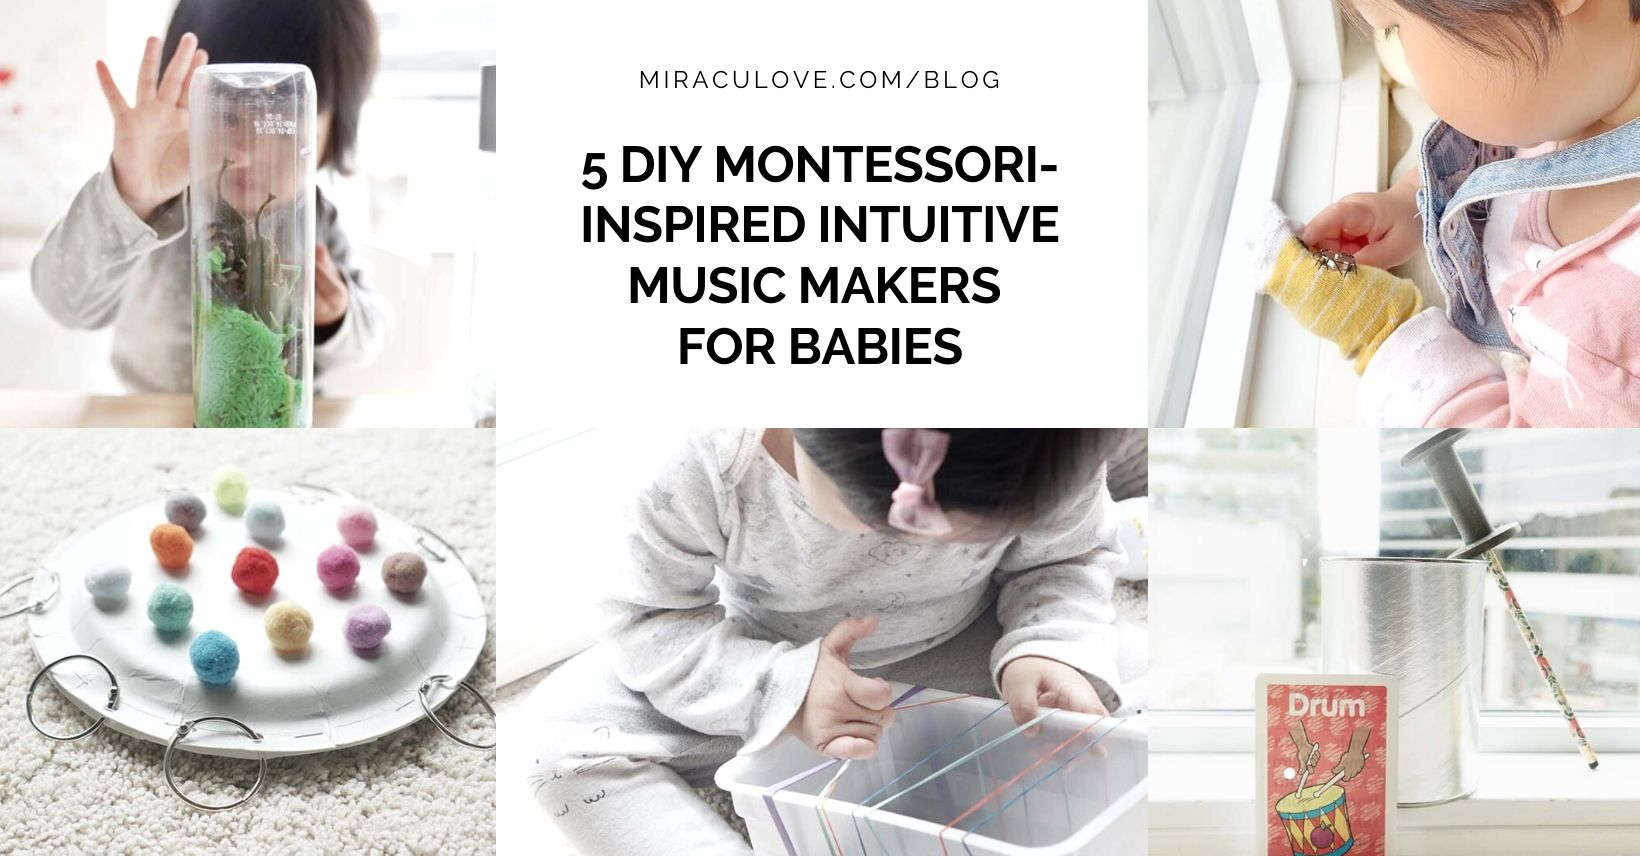 5 DIY Montessori Inspired Intuitive Music Makers for Babies